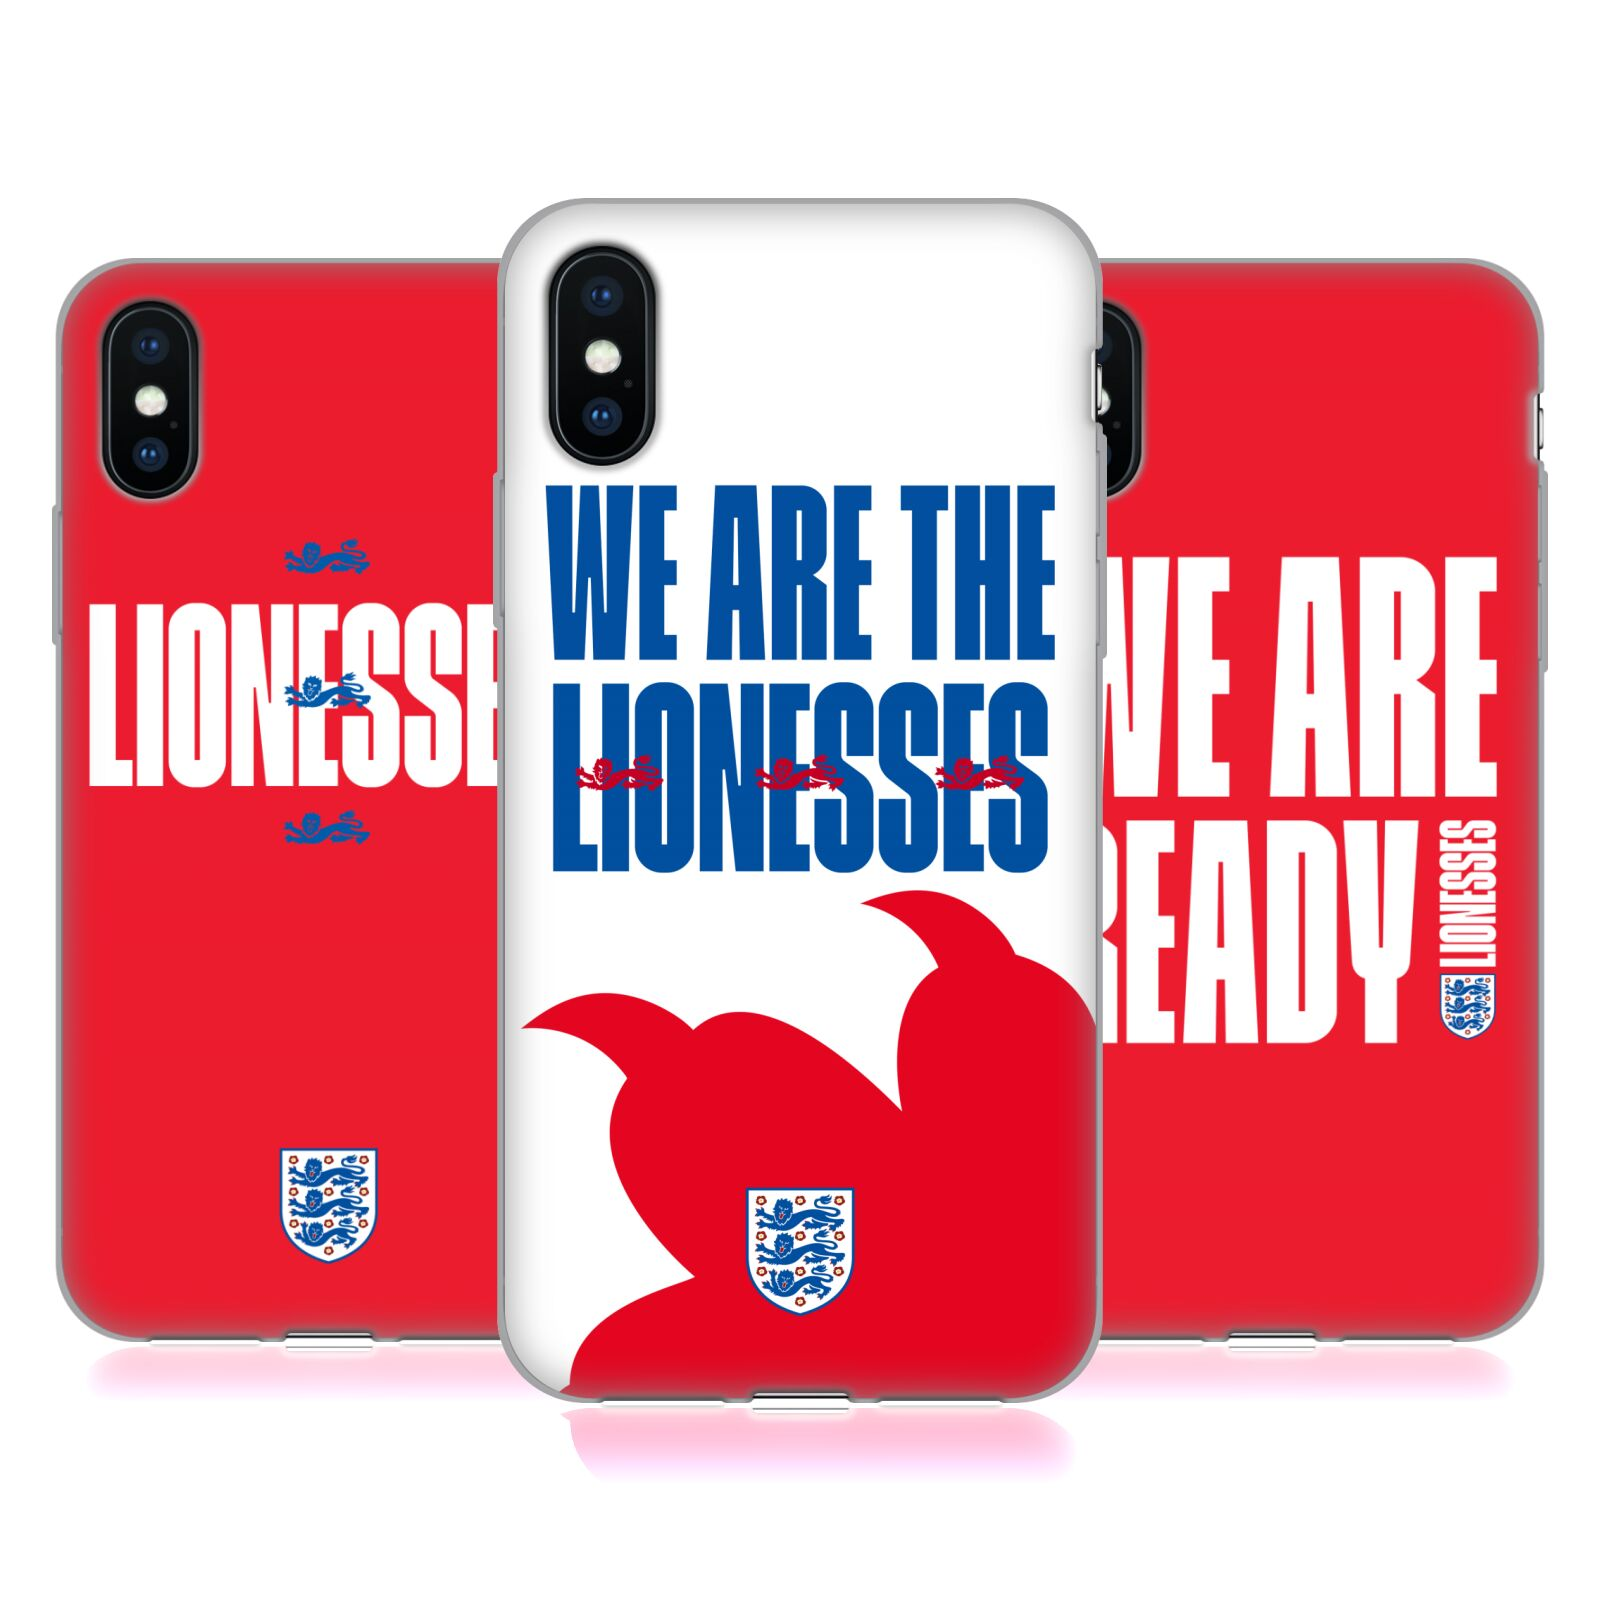 England National Football Team <!--translate-lineup-->2019/20 Lionesses<!--translate-lineup-->